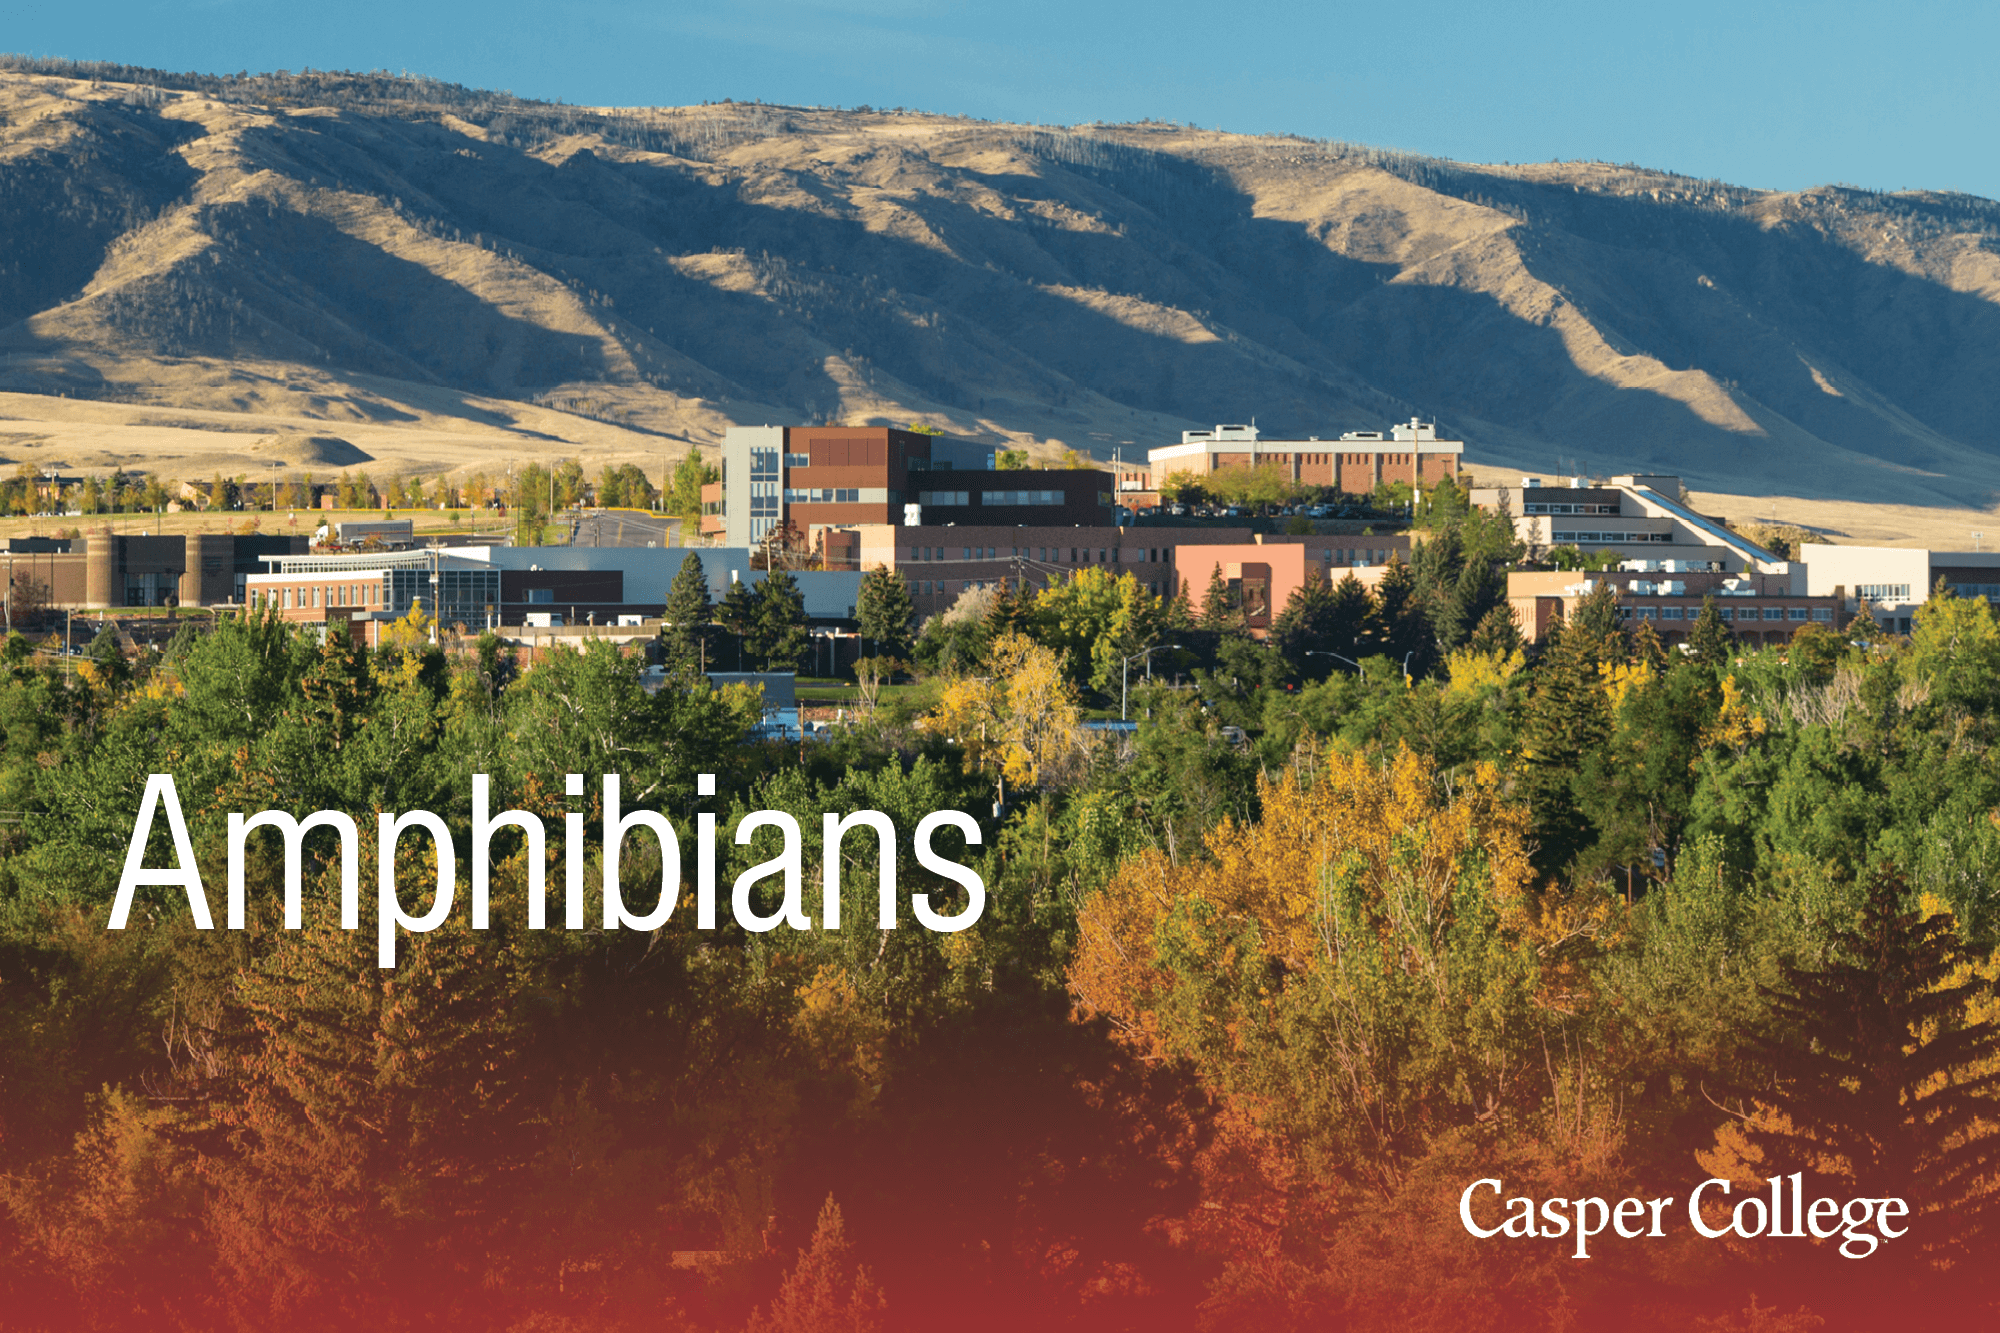 Photo of Casper College with the word Amphibians